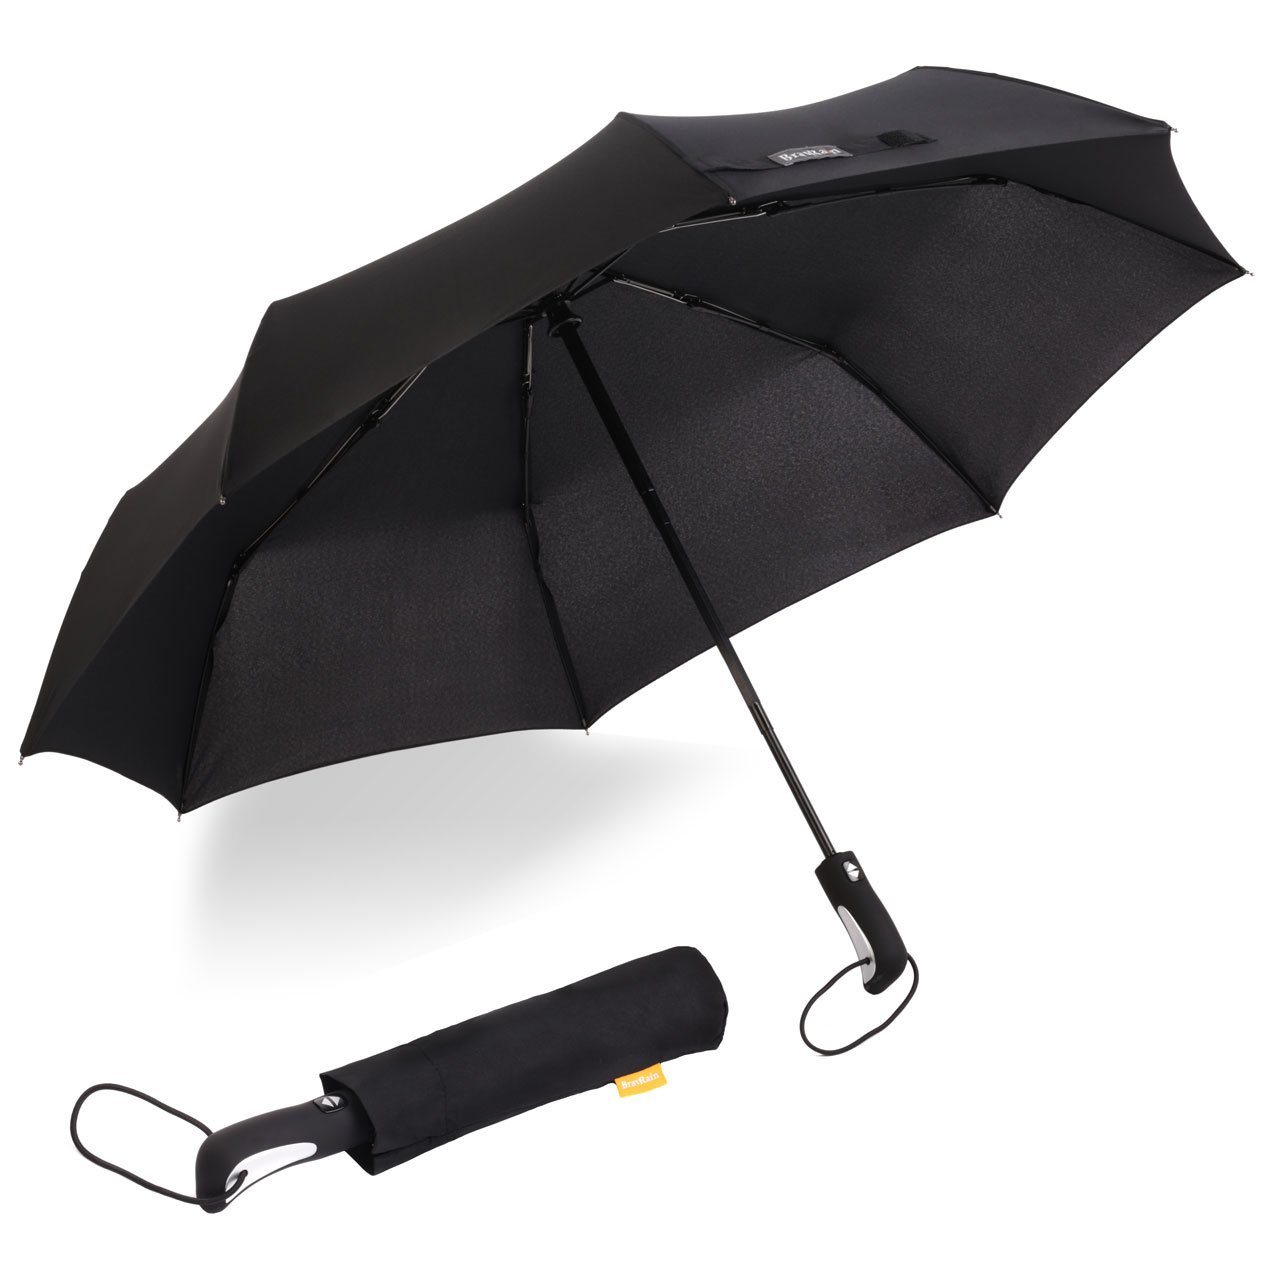 BravRain Windproof Umbrella, Travel Umbrella Strong Lightweight Carbon Fiber Umbrellas for Women Men, Stick Rain Umbrella Nanofiber Fabric OP-TECH